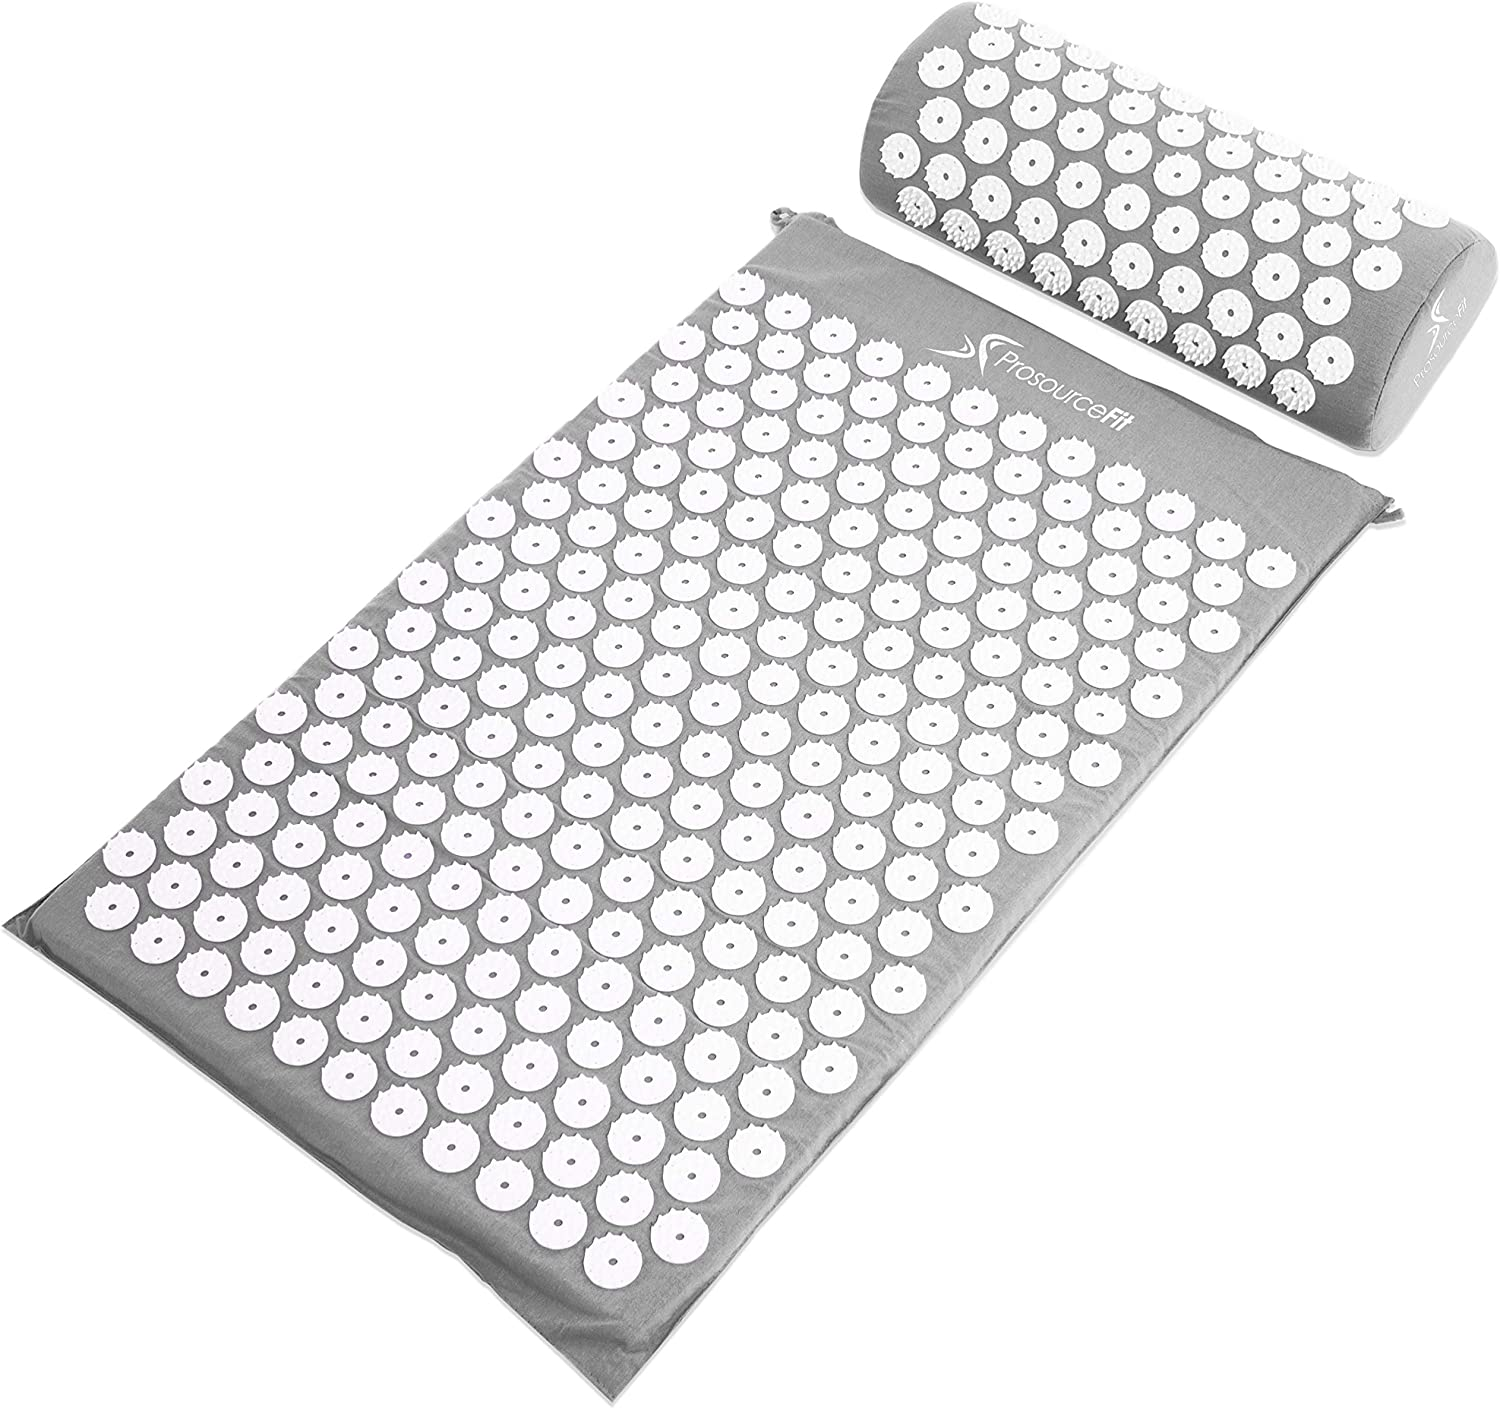 ProsourceFit Acupressure Mat and Pillow Set - Grey: Sports & Outdoors